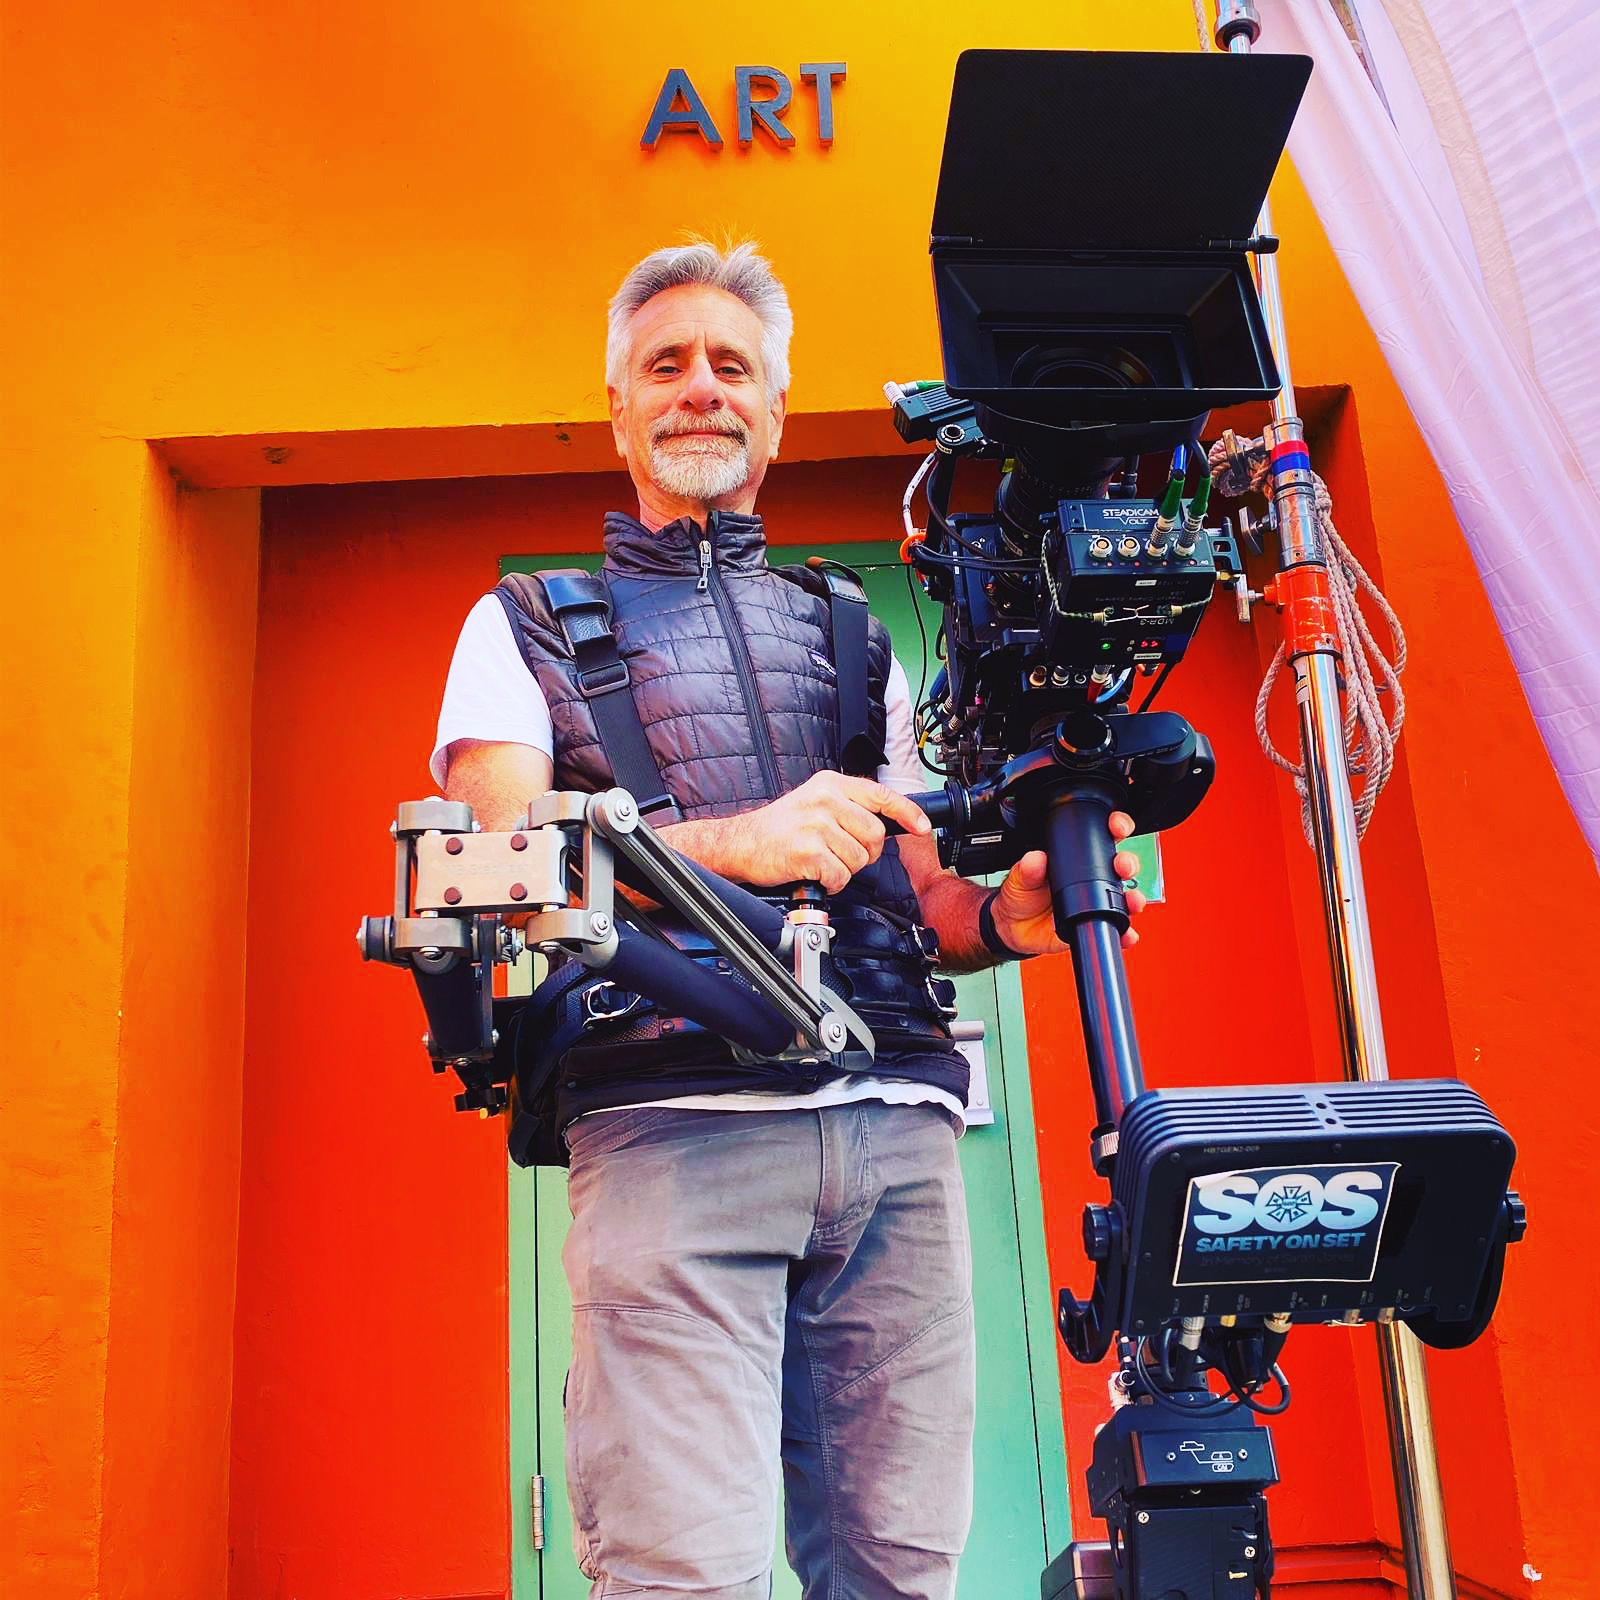 Lawrence Karman Steadicam